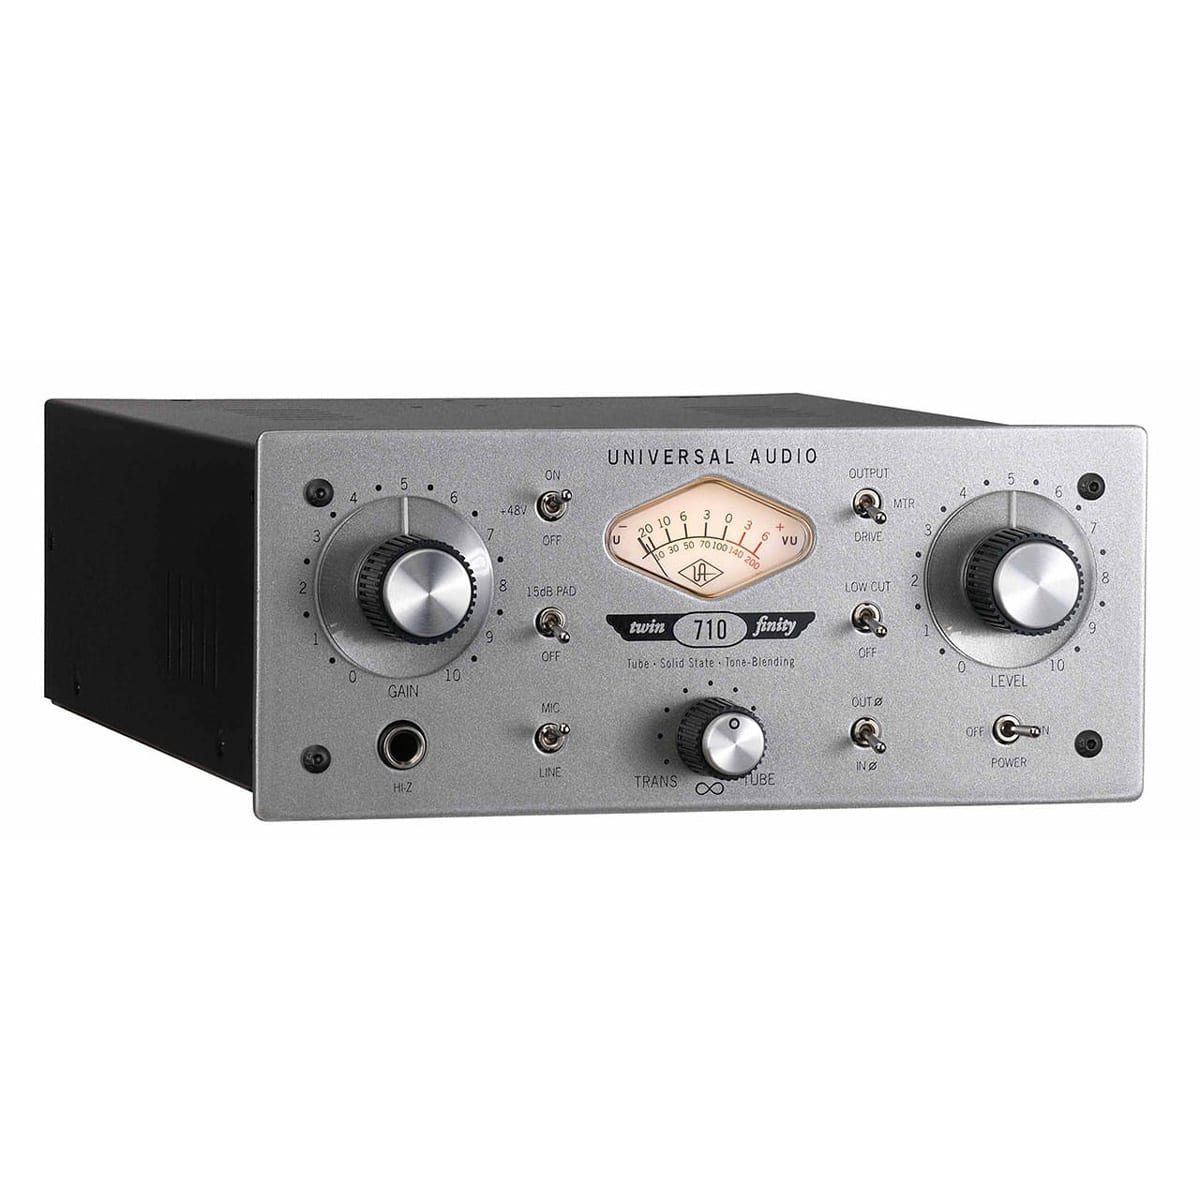 universal-audio-710-twin-finity_31